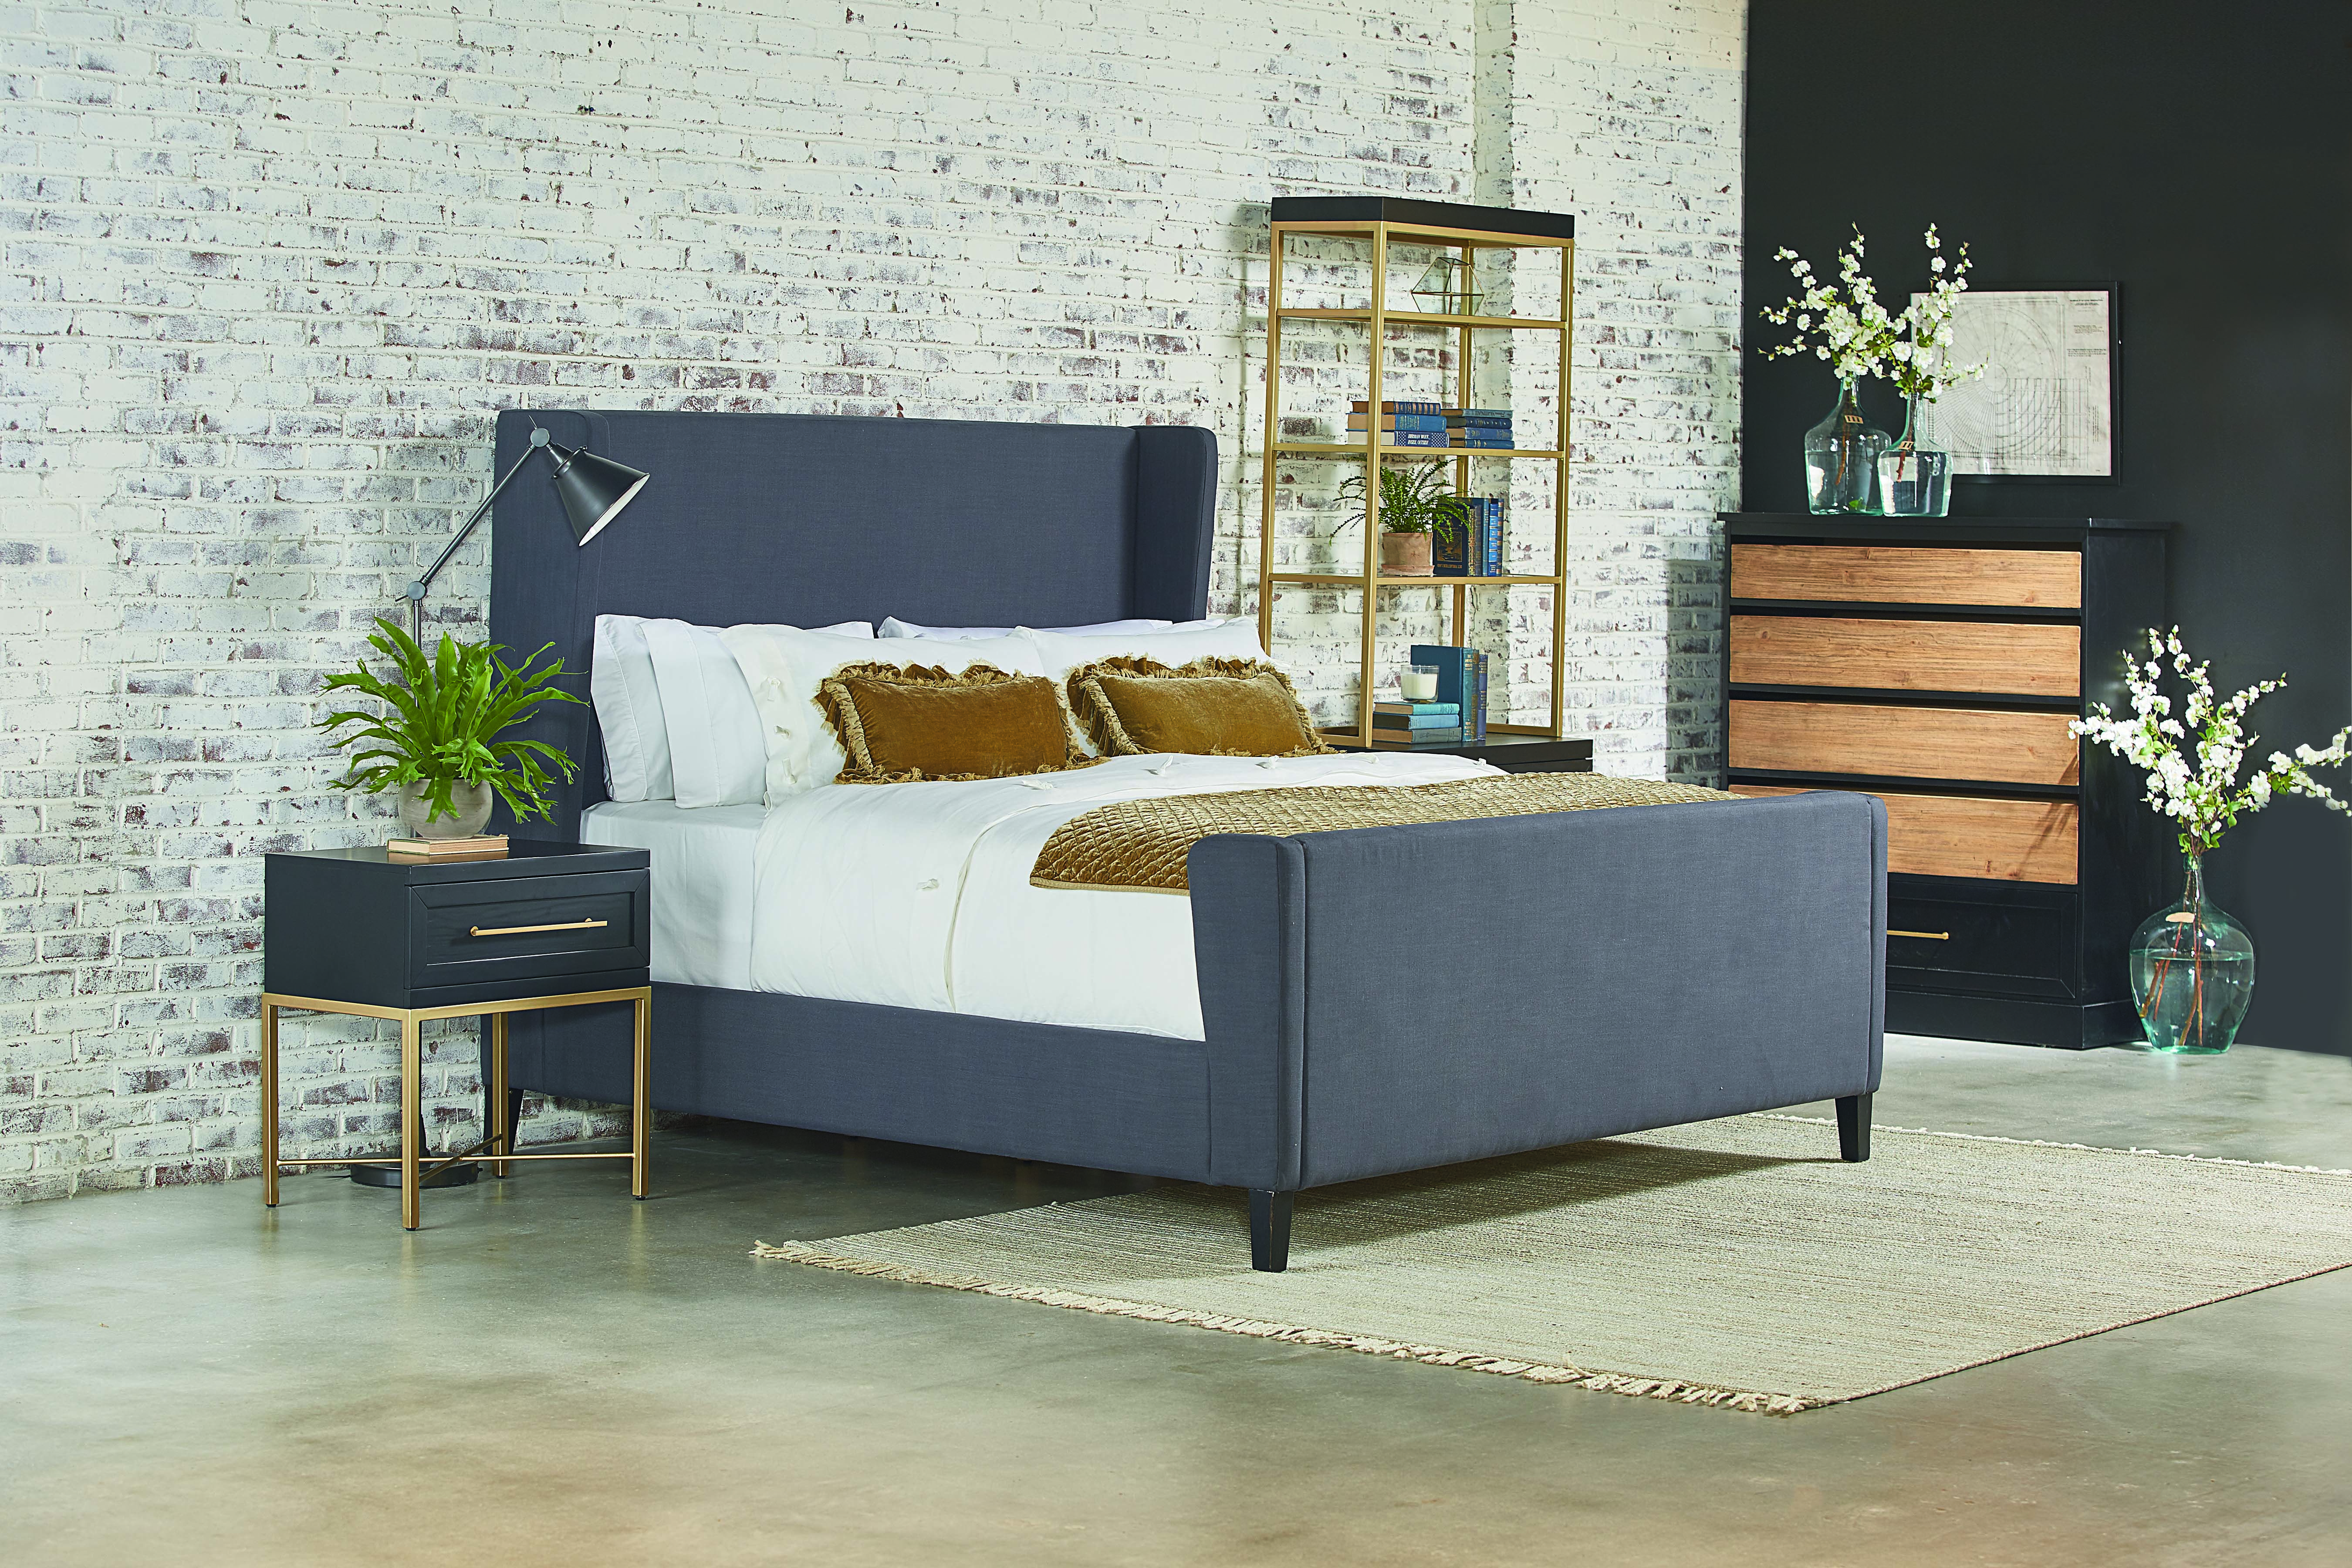 Magnolia Home By Joanna Gaines Modern Upholstered Bed Queen Upholstered Bed King Upholstered